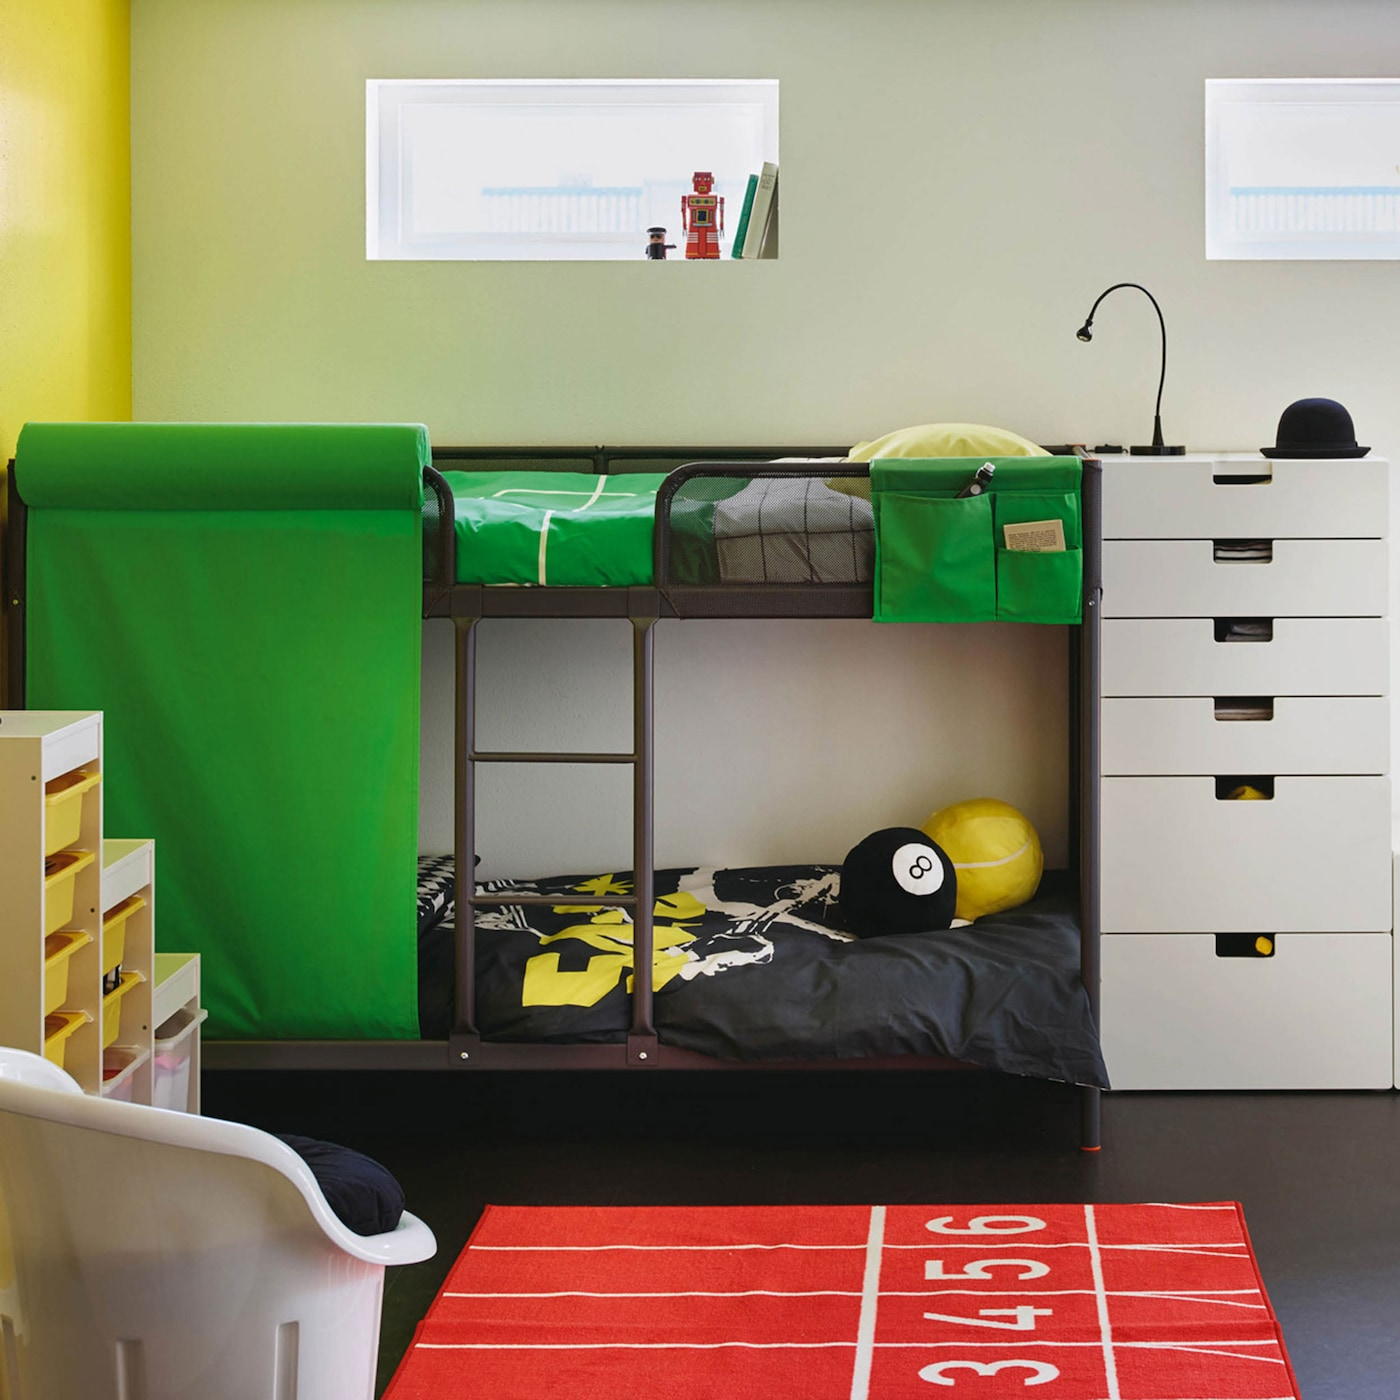 Space-saving bunk bed storage ideas - IKEA